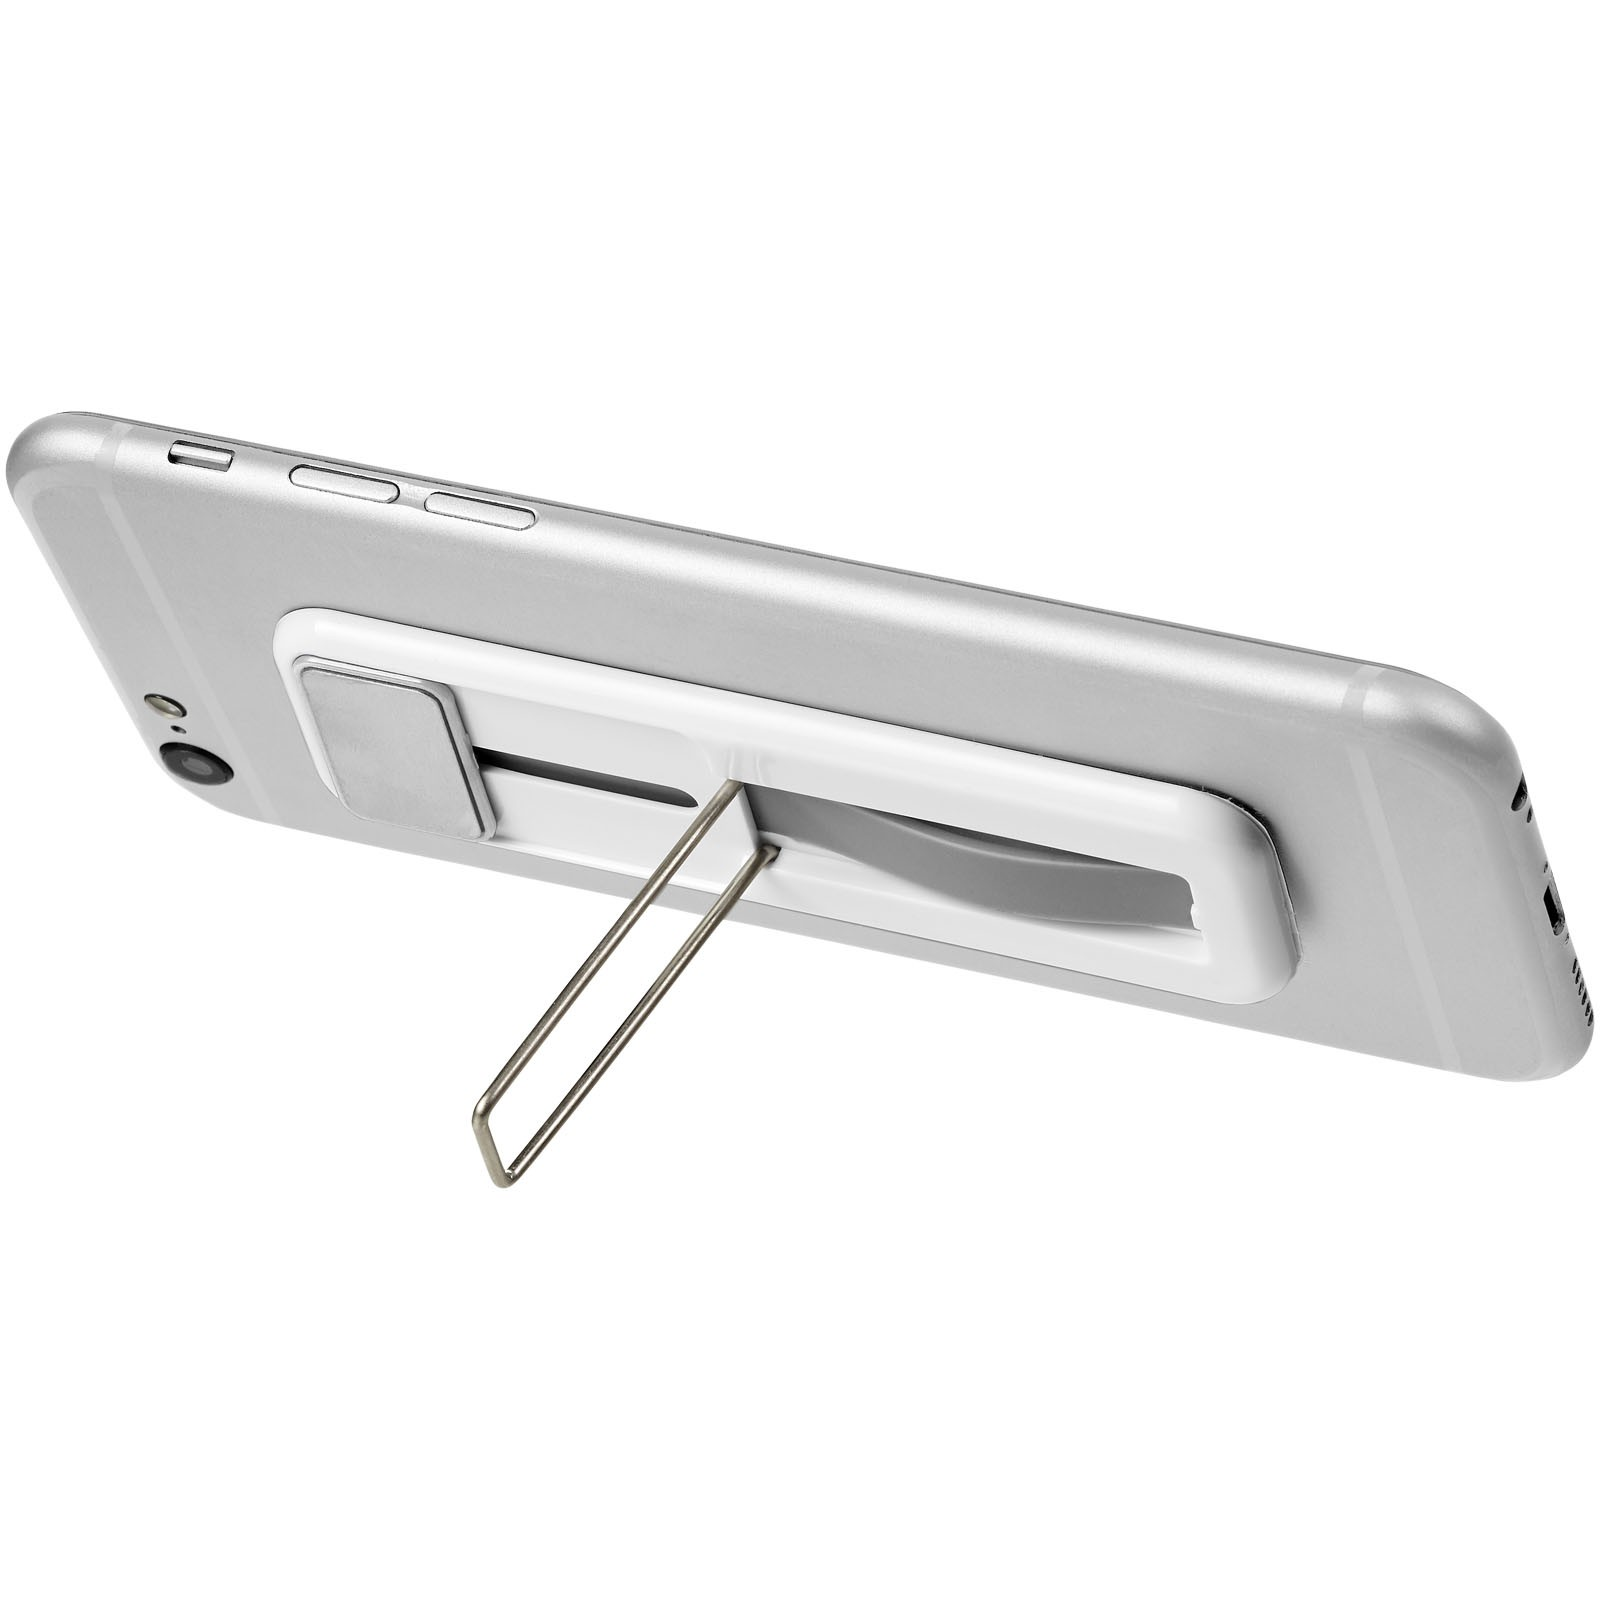 Plane phone holder & stand - Silver